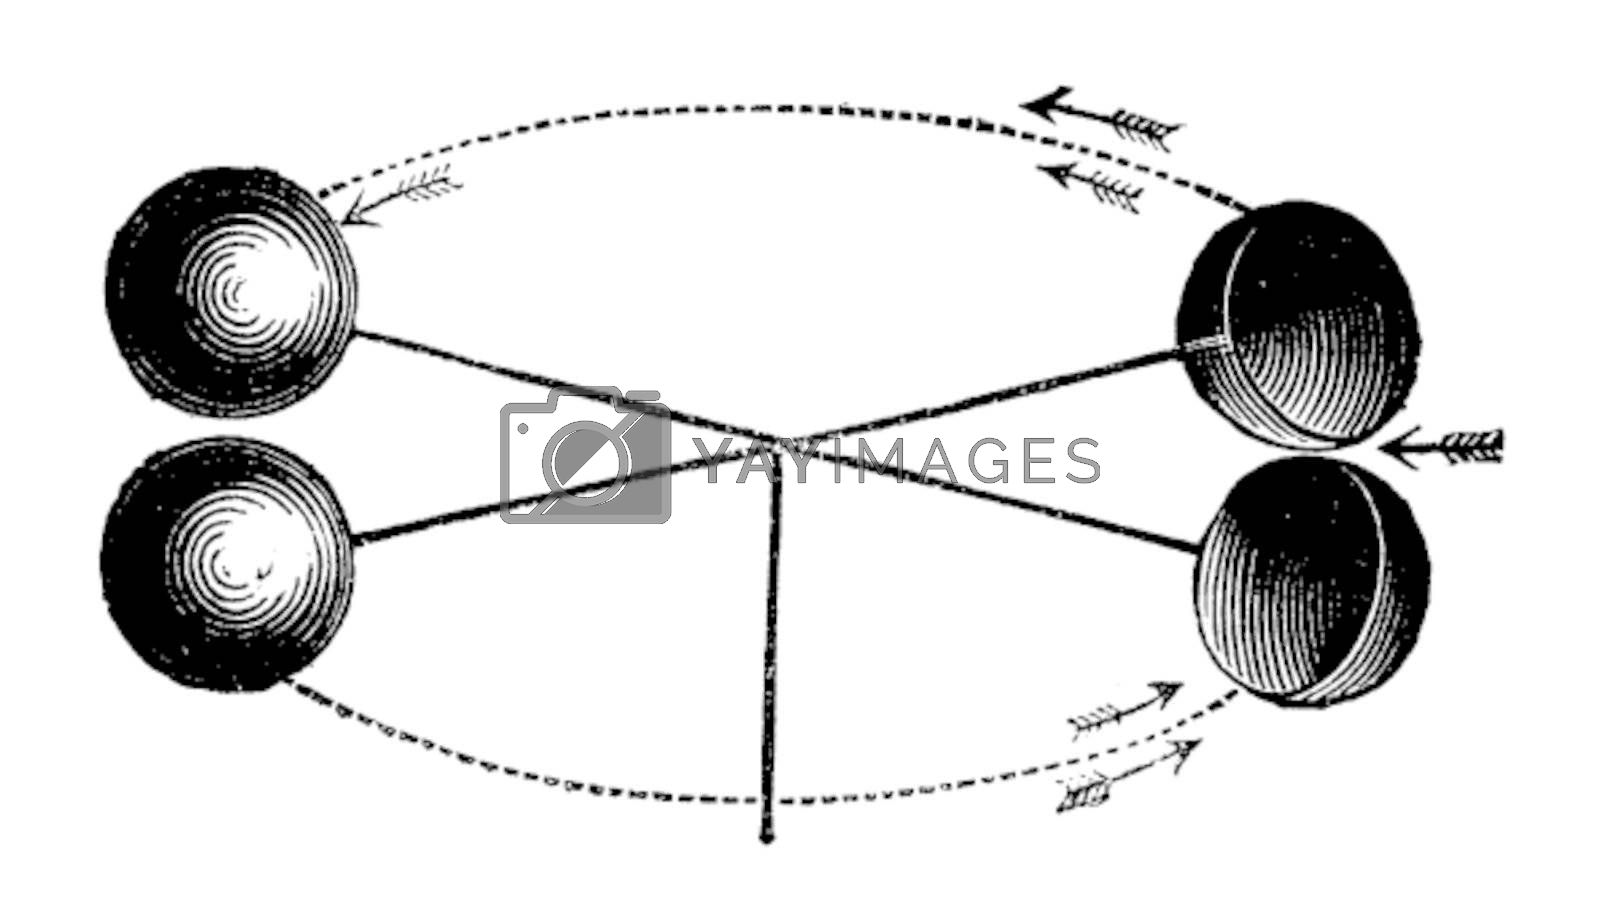 Robinson's anemometer or wind gauge vintage engraving. Old engraved illustration of the anemometer invented by John Thomas Romney Robinson in 1846. Vector illustration, isolated on white